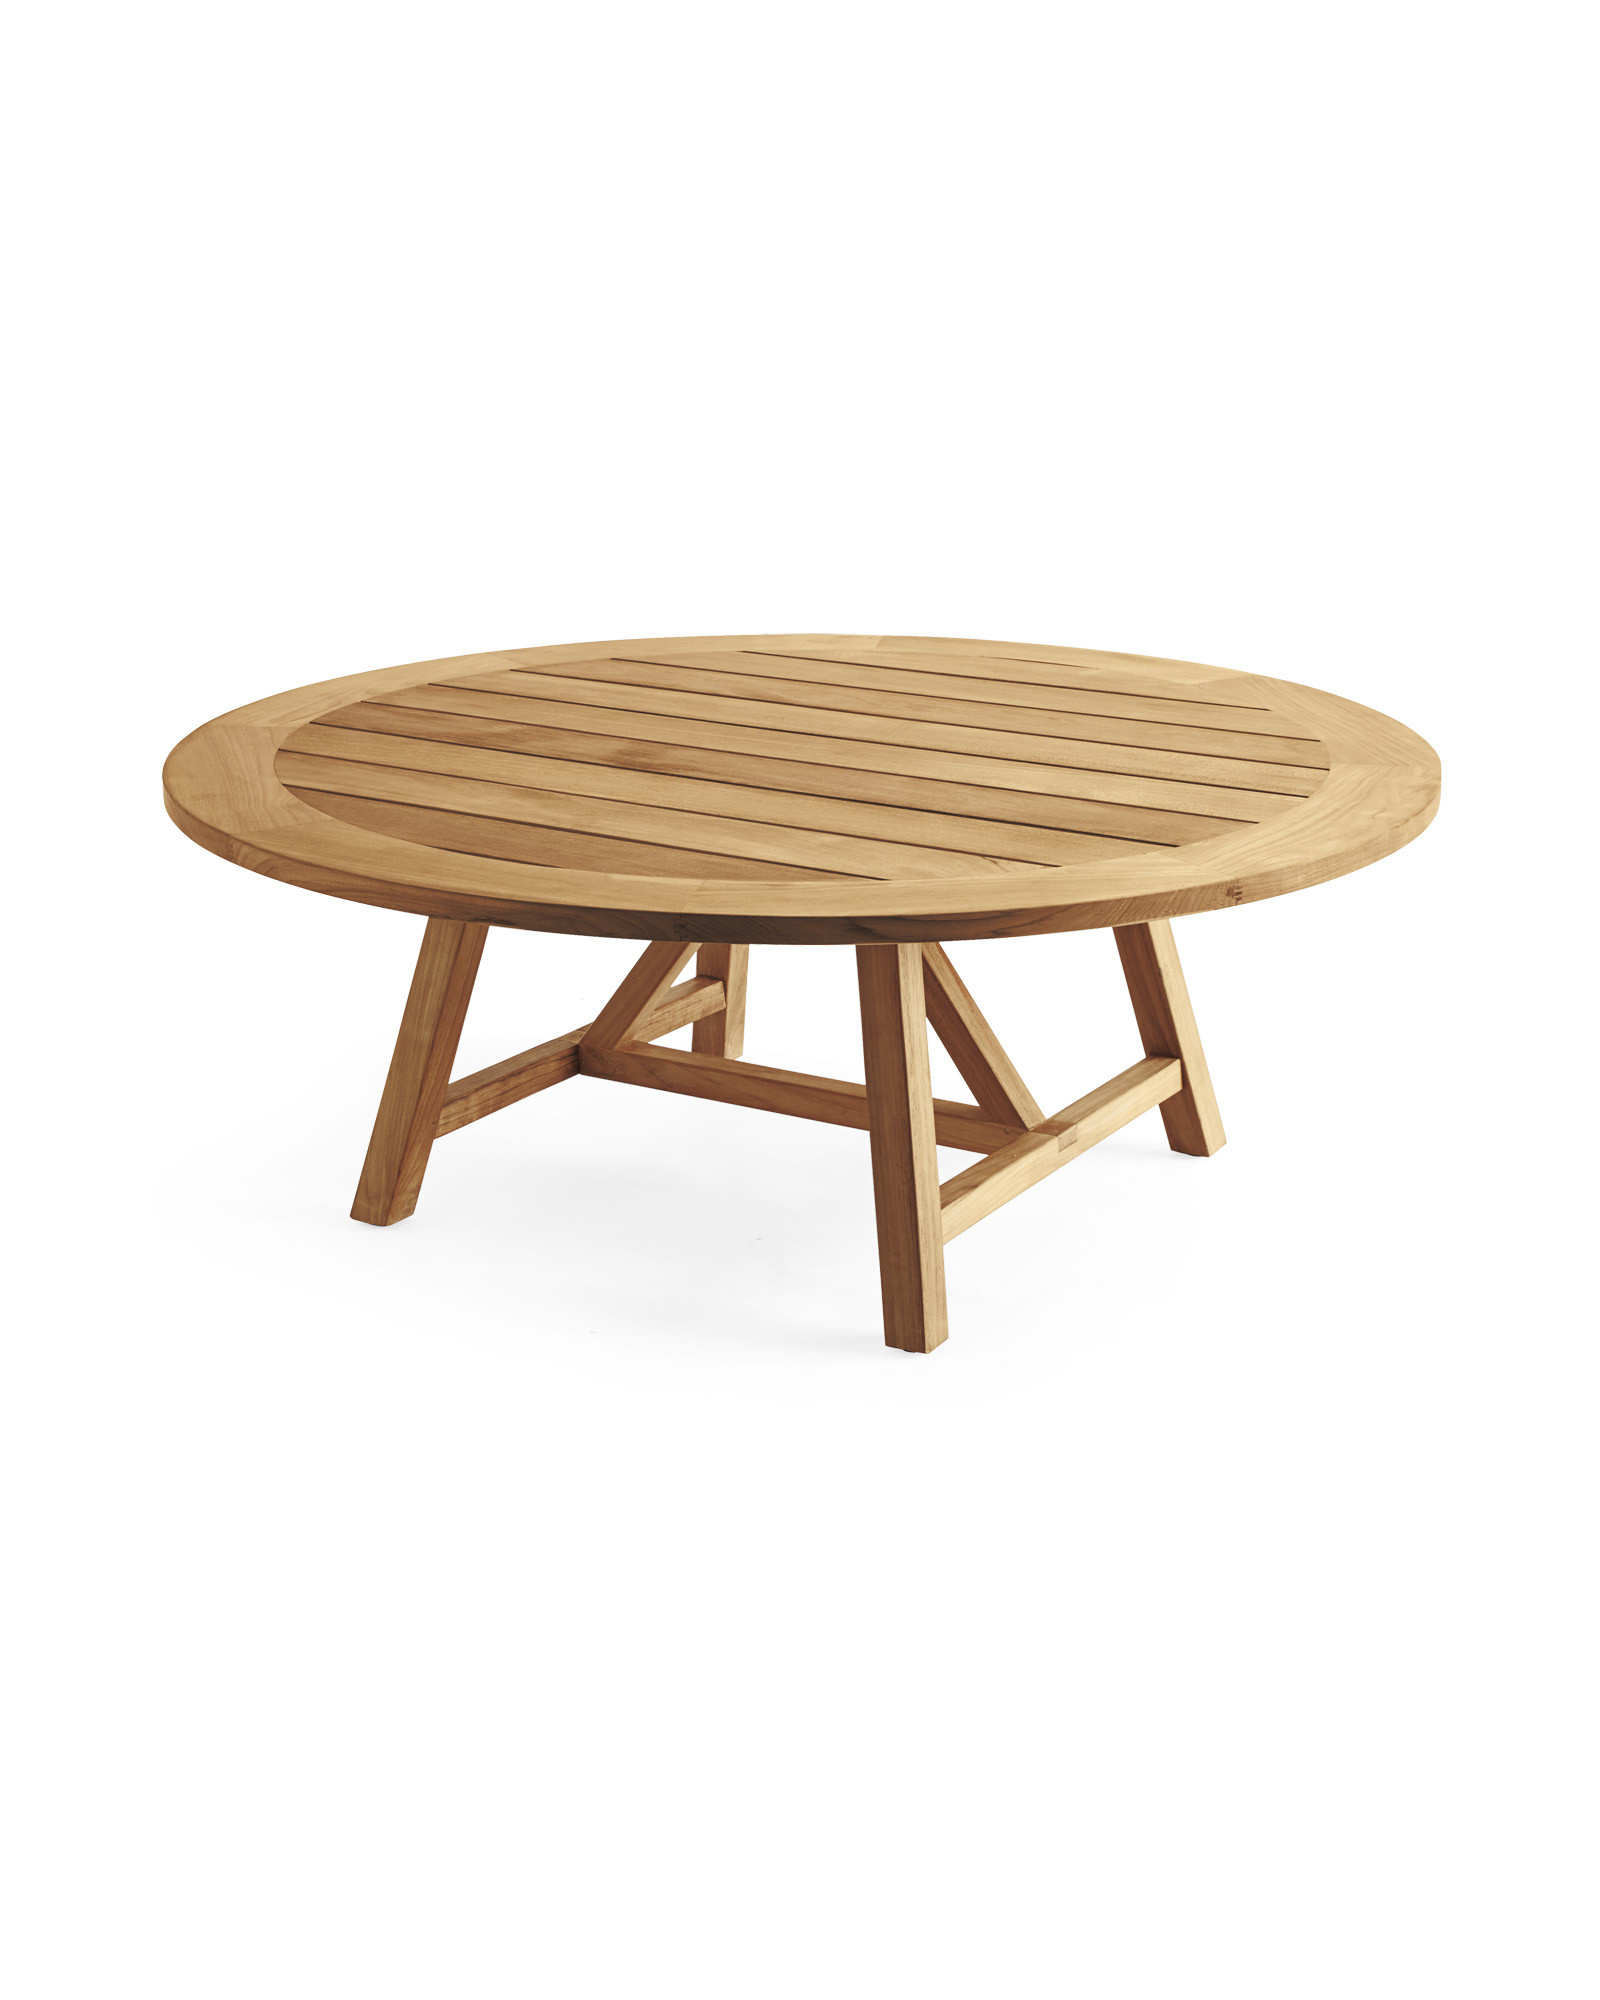 Teak Coffee Table Outdoor Fresh Round Teak Coffee Table Pertaining To Most Up To Date Round Teak Coffee Tables (View 8 of 20)